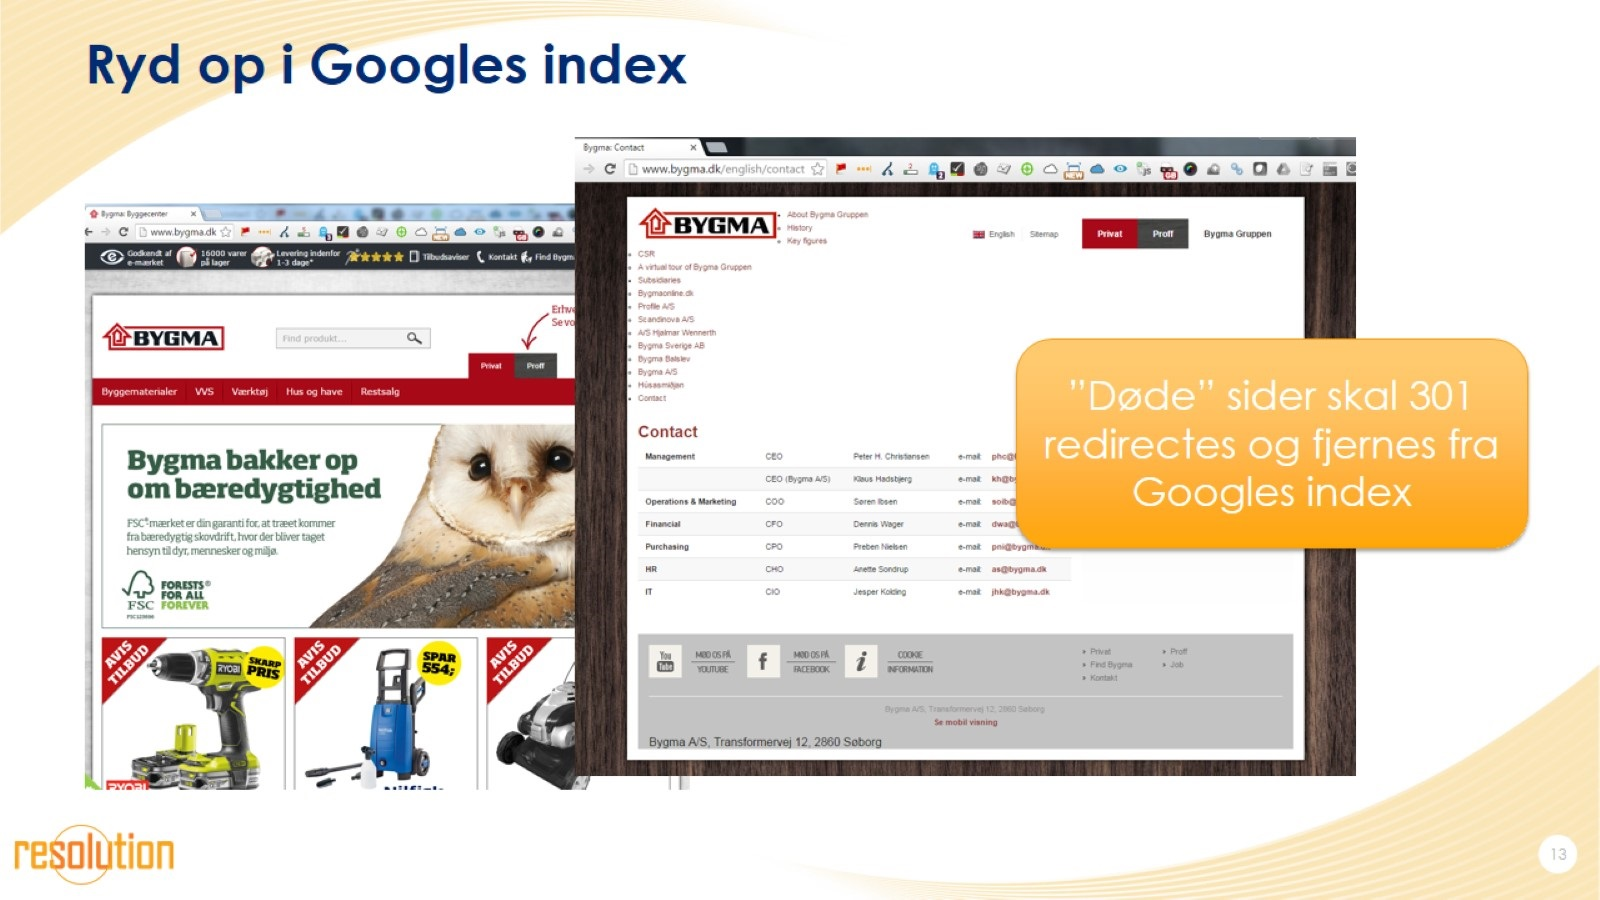 Ryd op i Googles index